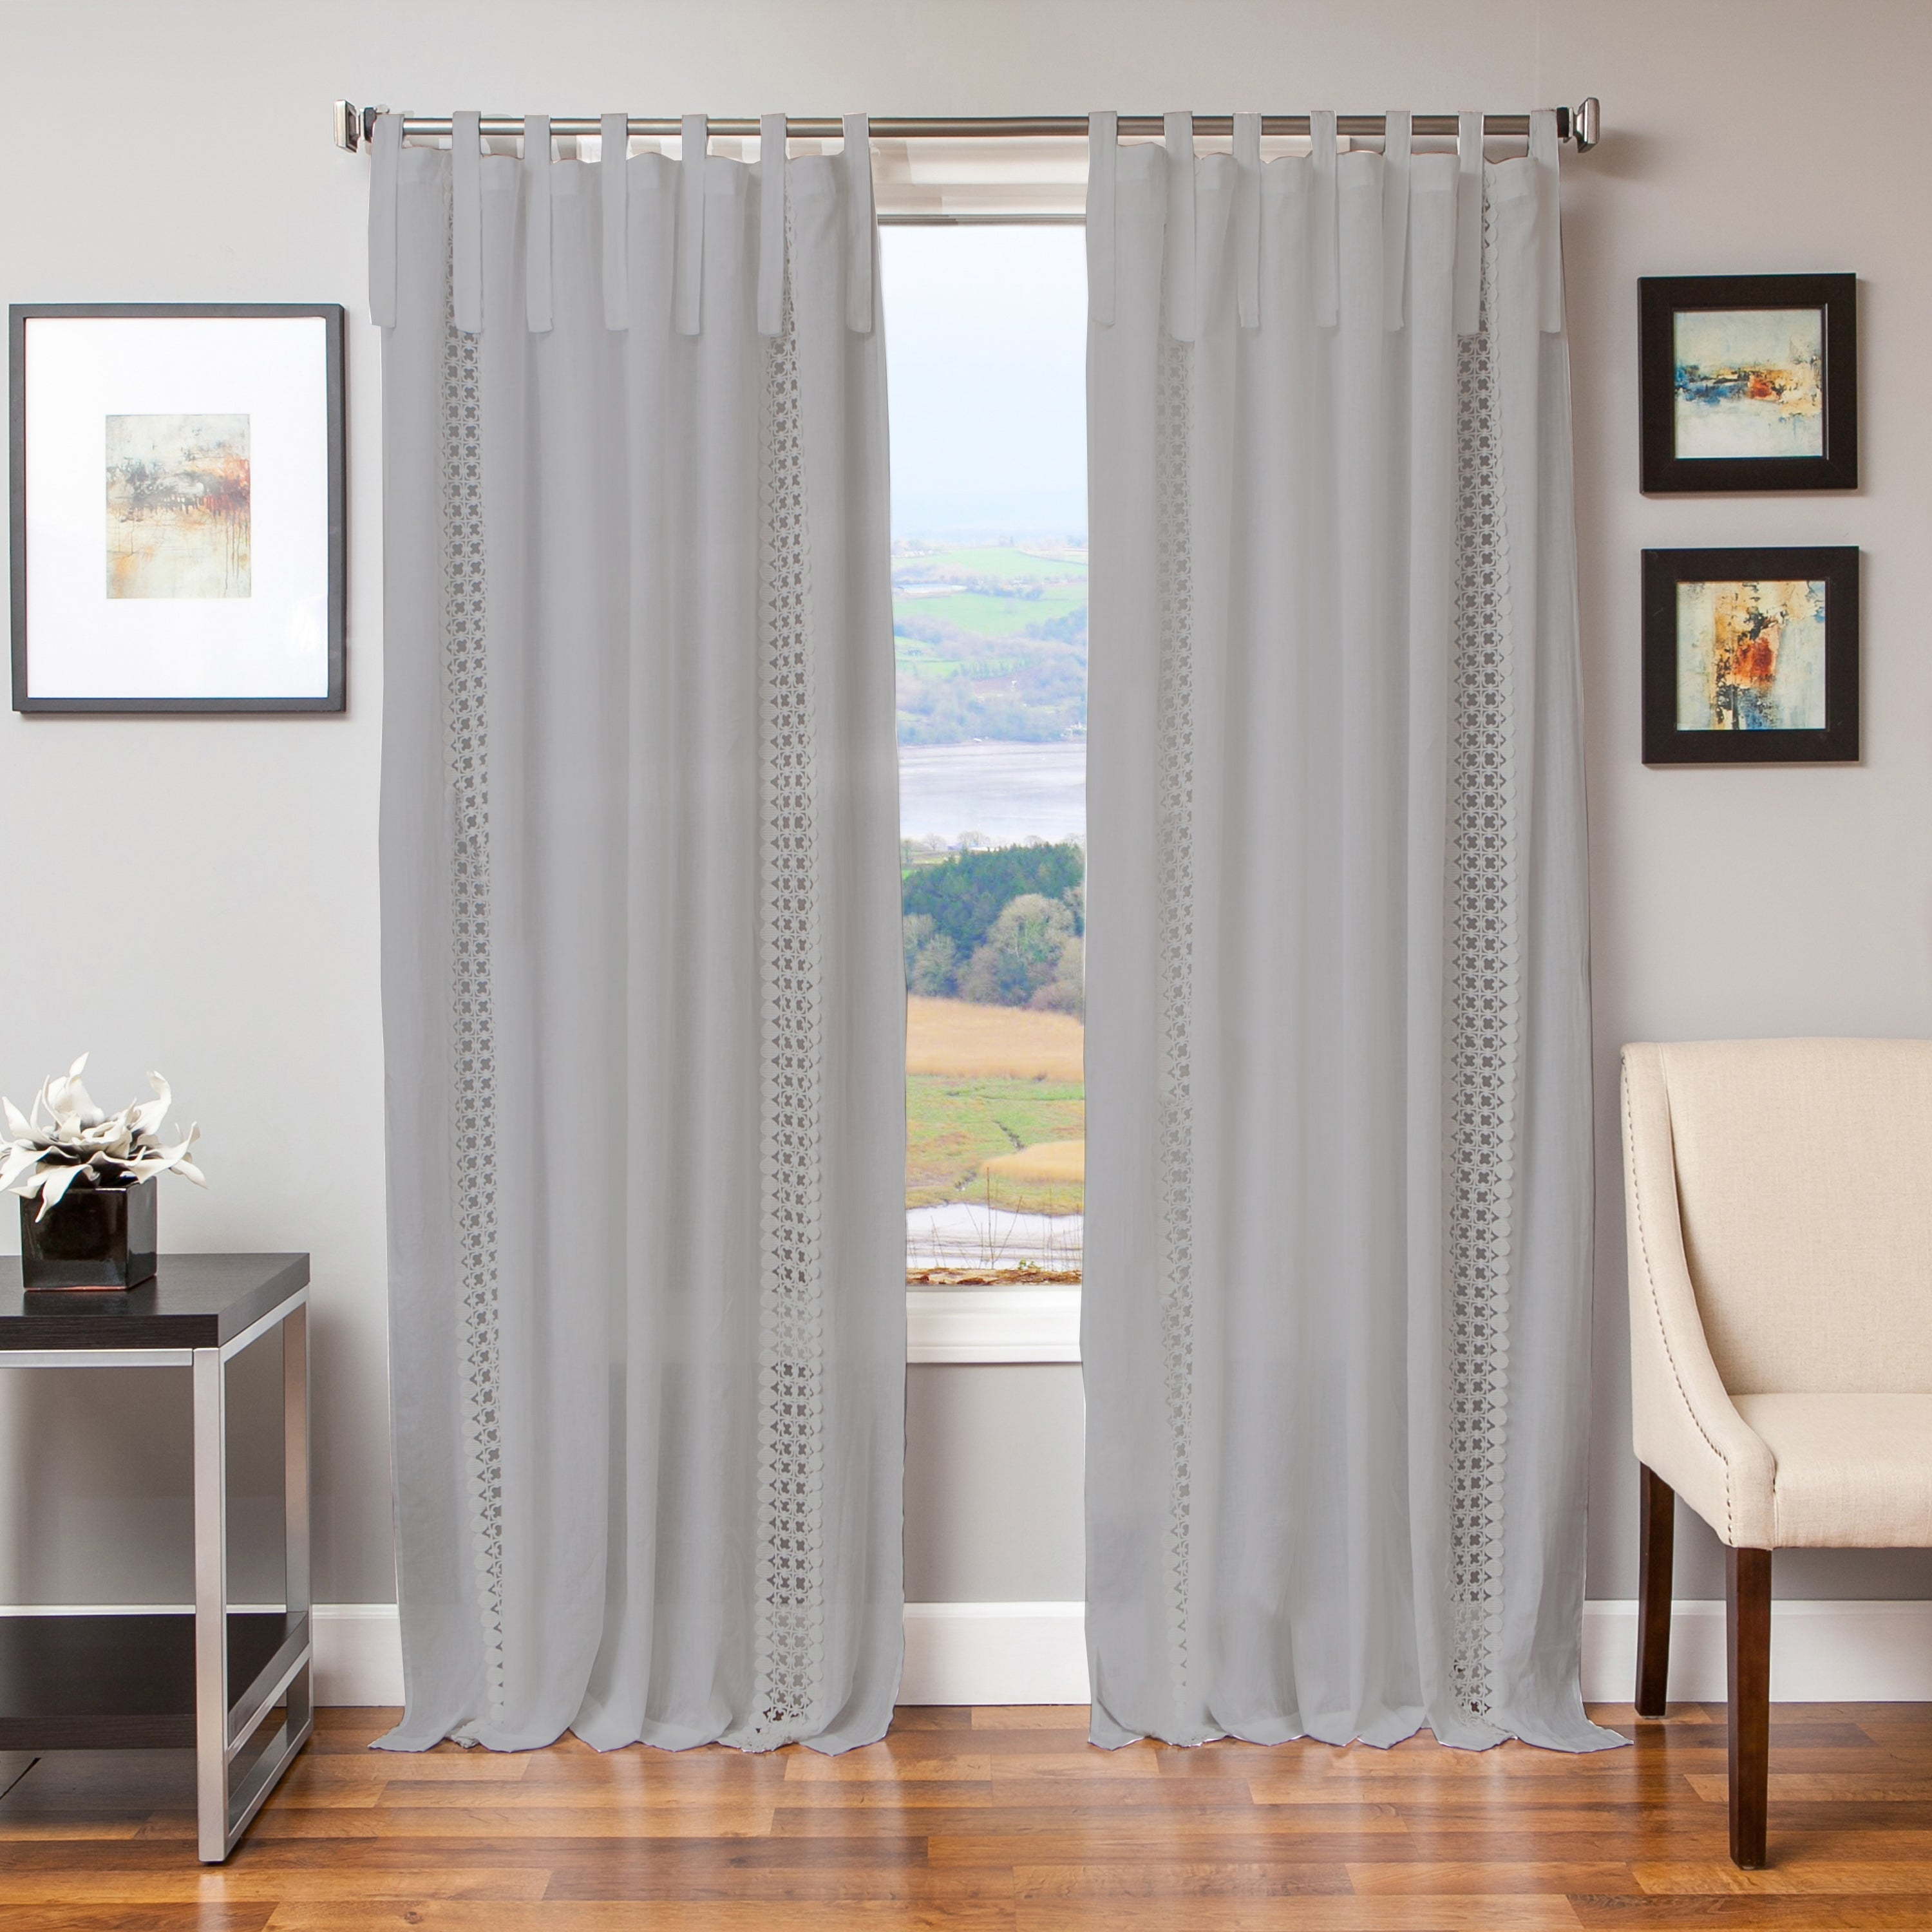 Softline Tie Tab Cotton and Linen Macrame Curtain Panel (...